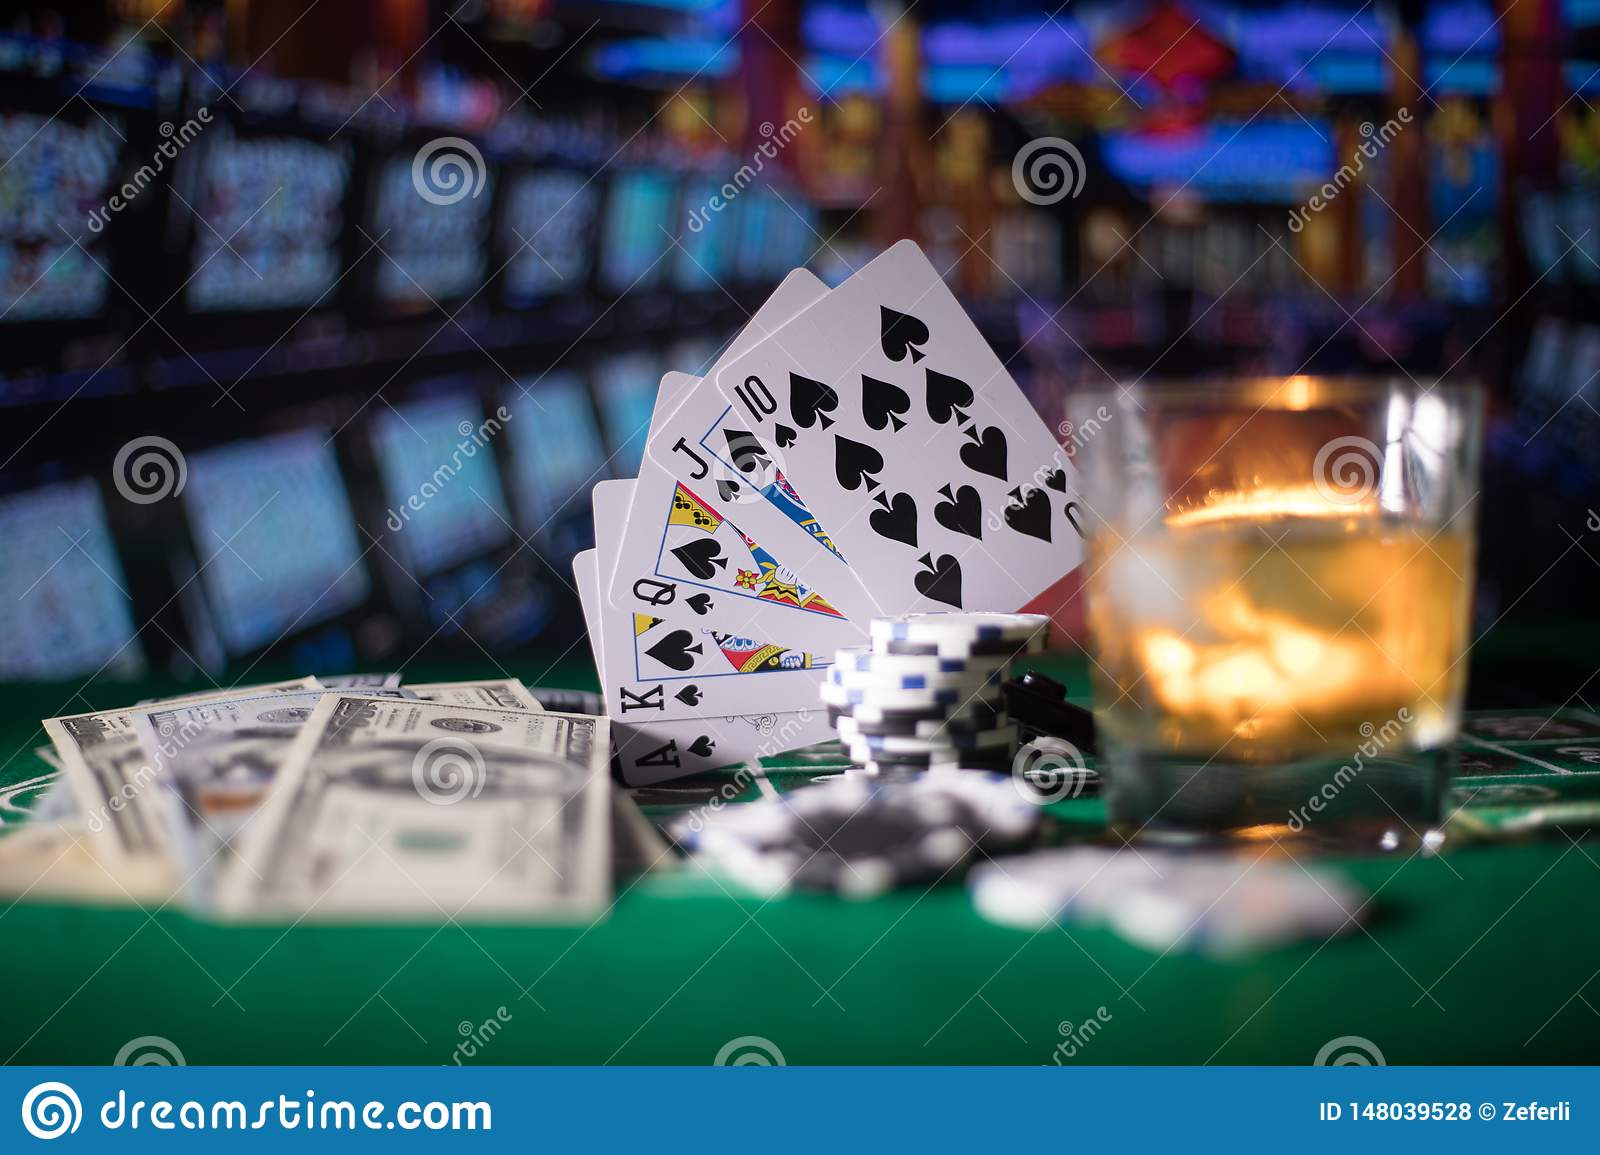 gambling, fortune, game and entertainment concept - close up of casino chips and whisky glass on table